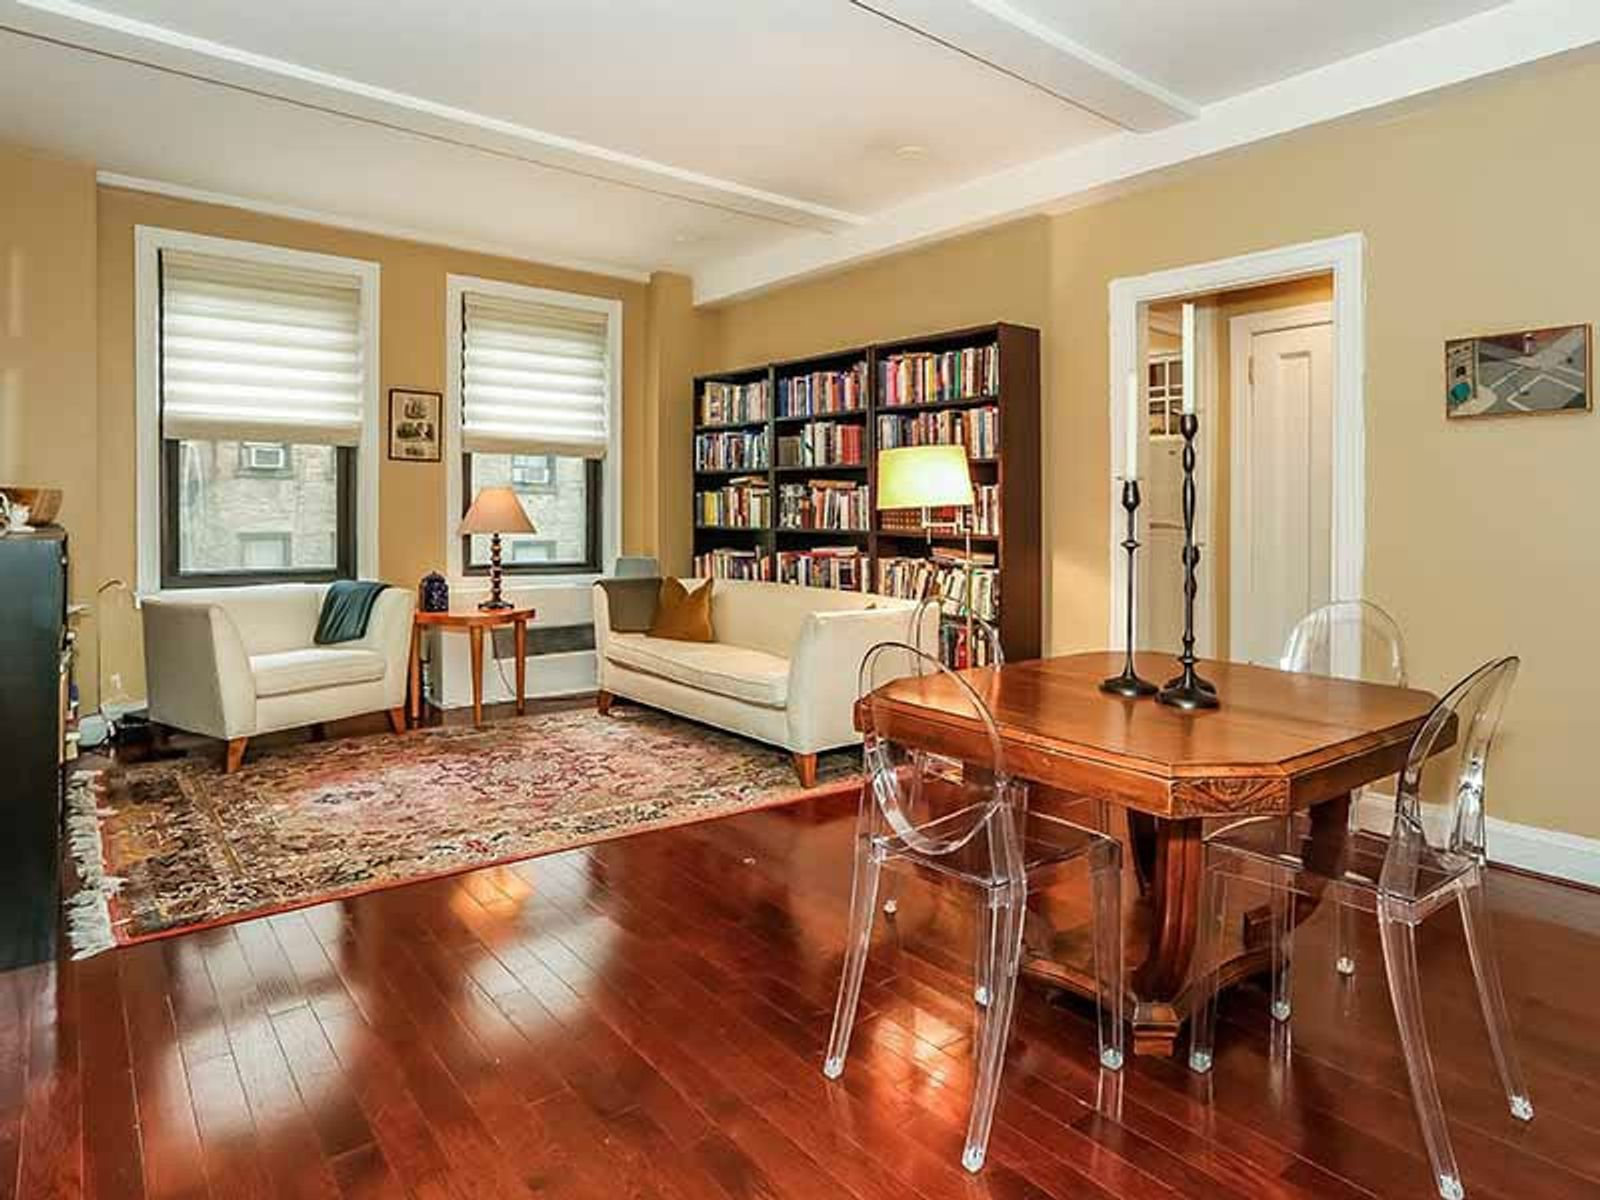 Charming Carnegie Hill 1 Bedroom, New York NY Cooperative - New York City Real Estate